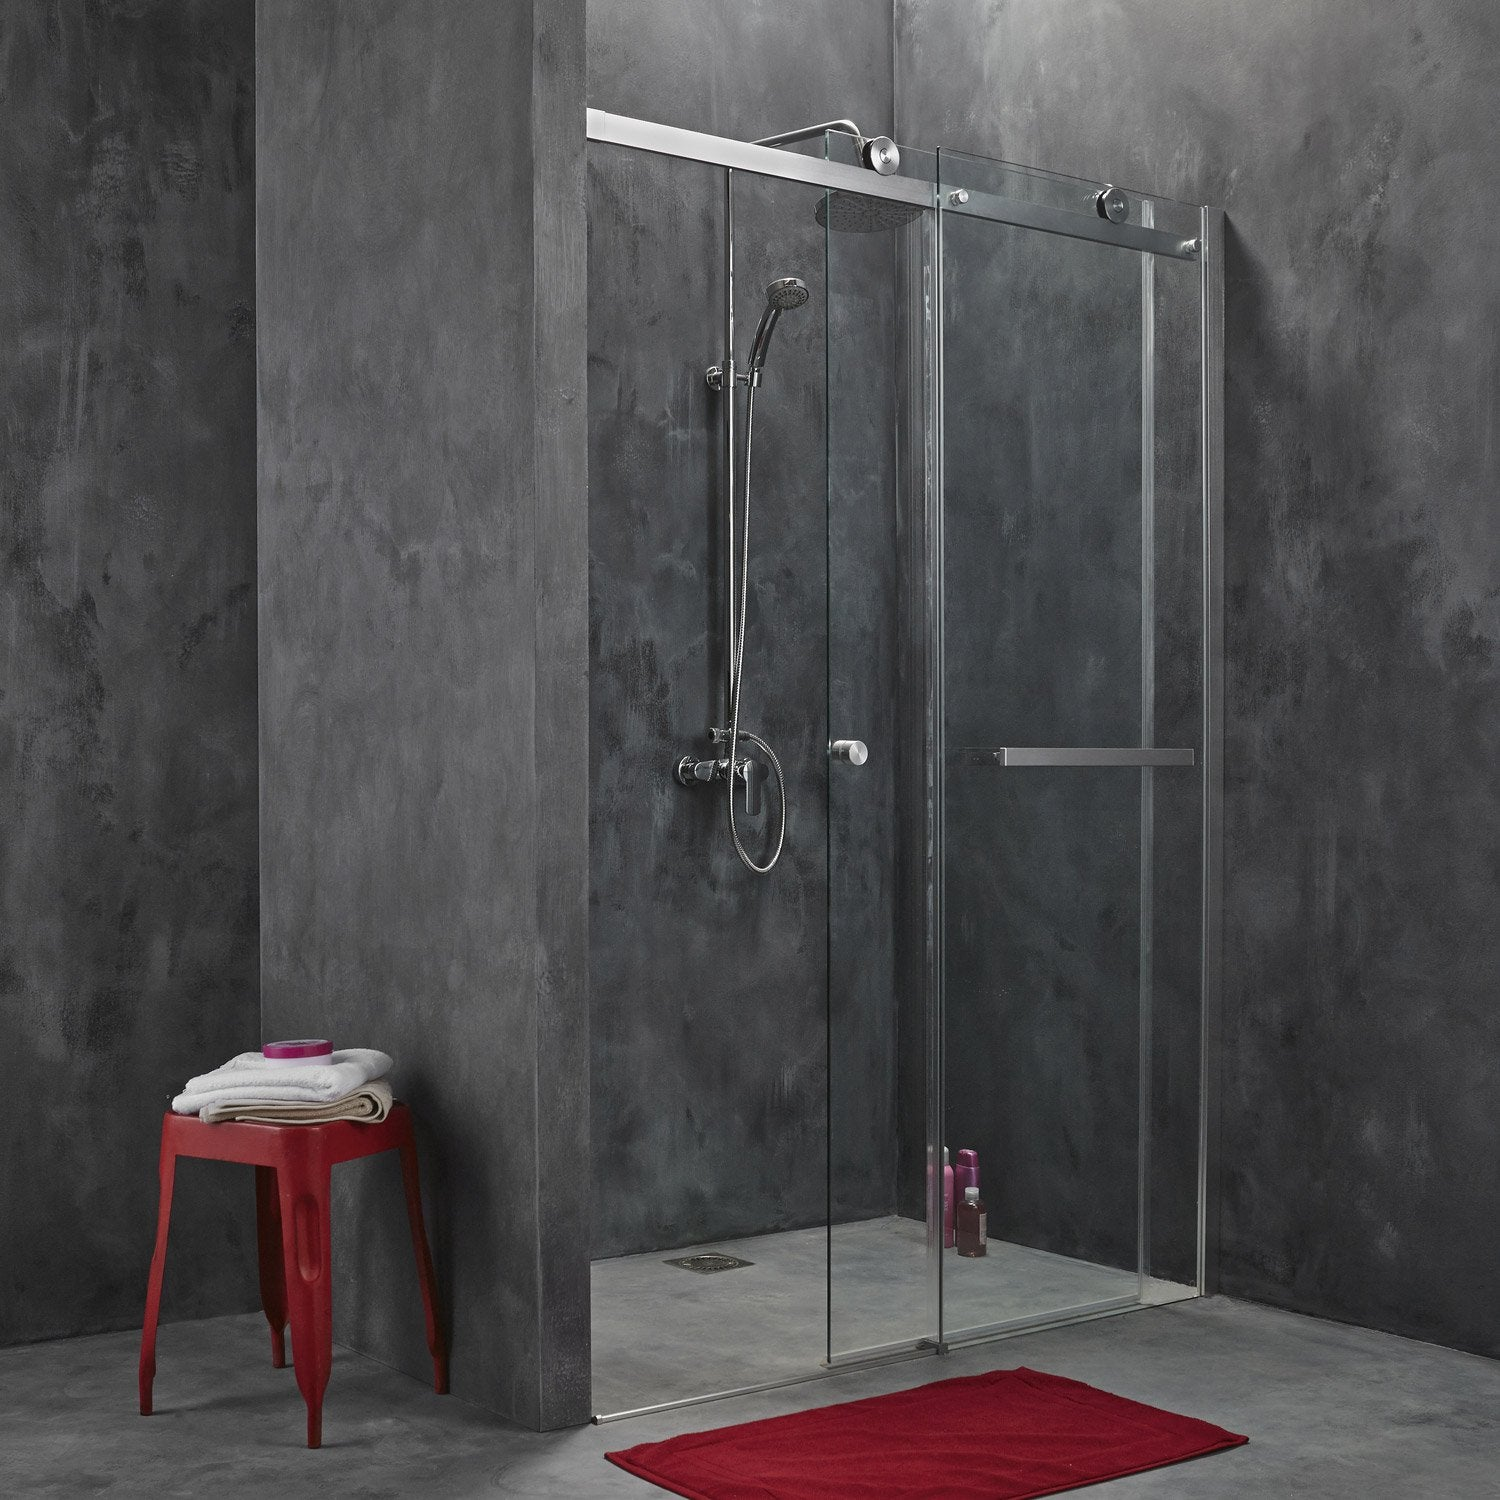 porte de douche coulissante 157 160 cm profil chrom. Black Bedroom Furniture Sets. Home Design Ideas